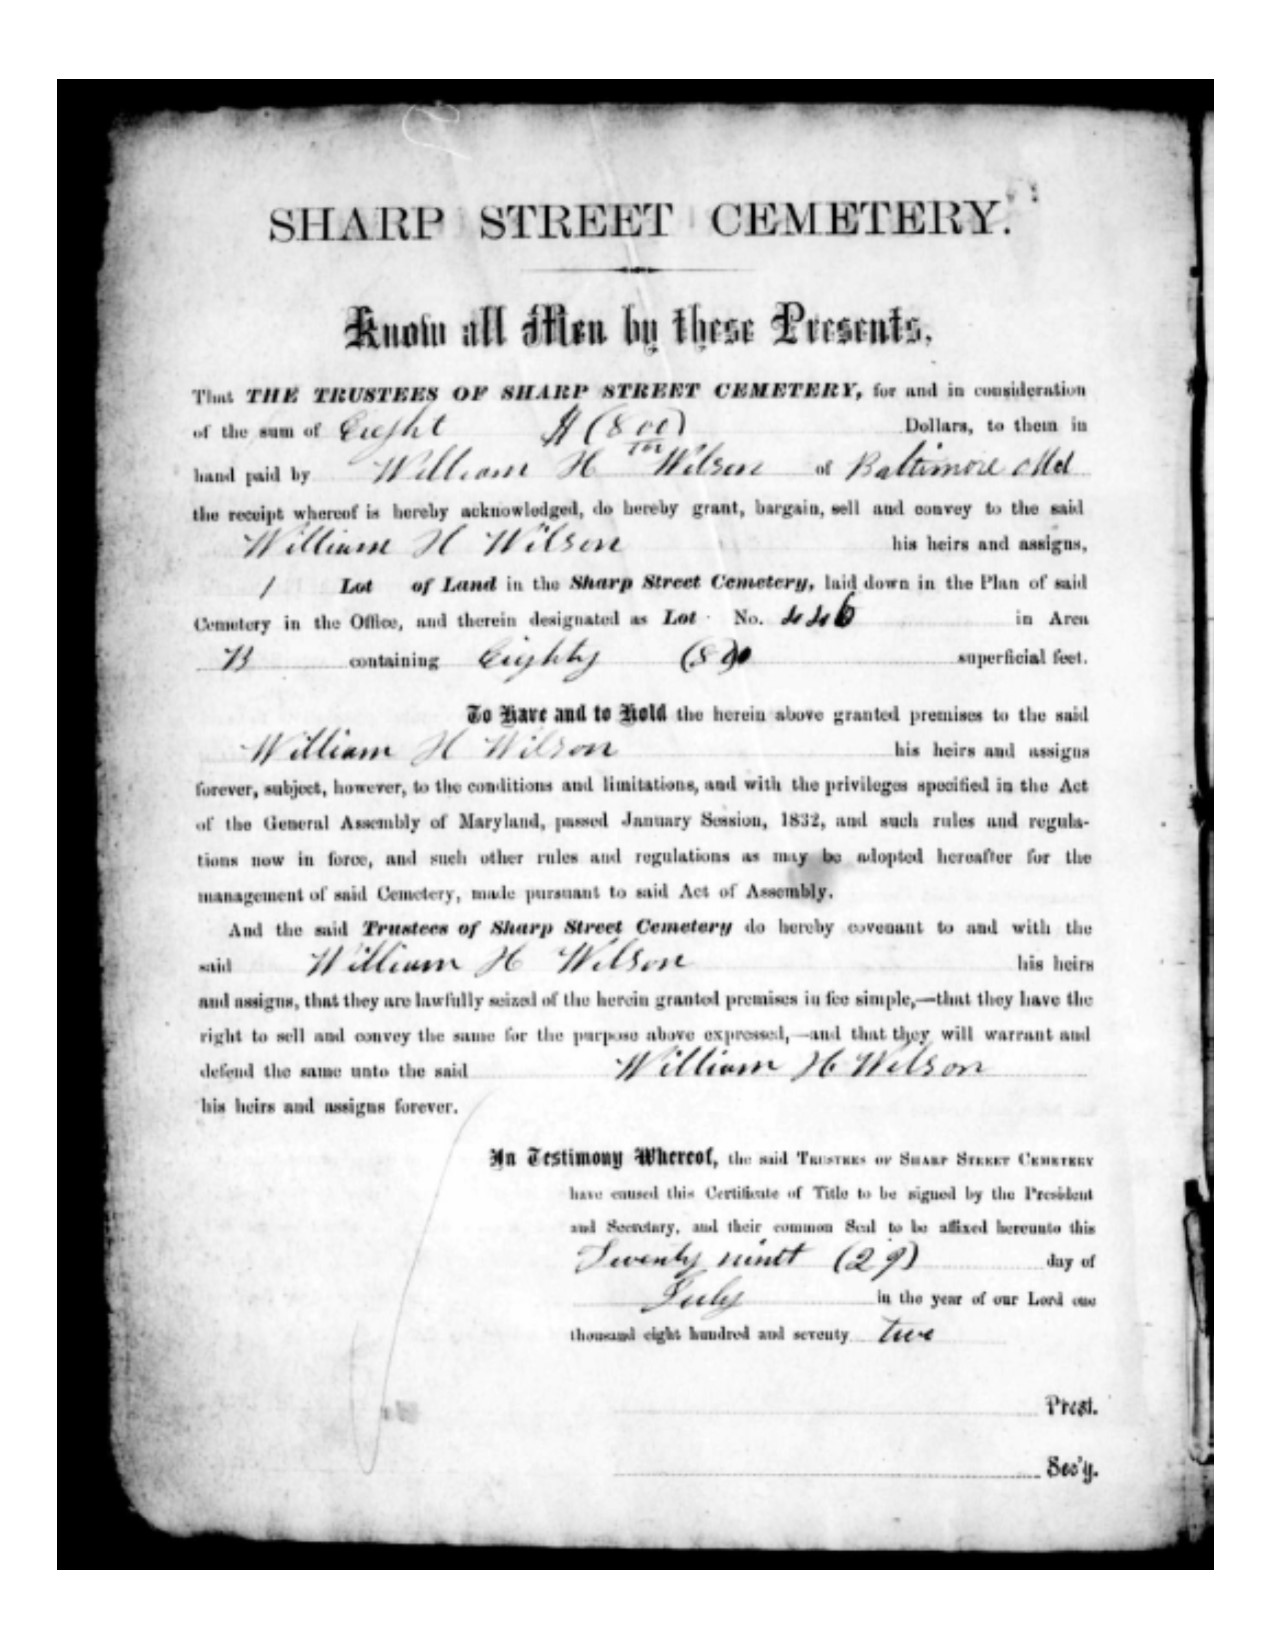 William H. Wilson Cemetery Deed-purchased July 29, 1872 -lot B, number 446